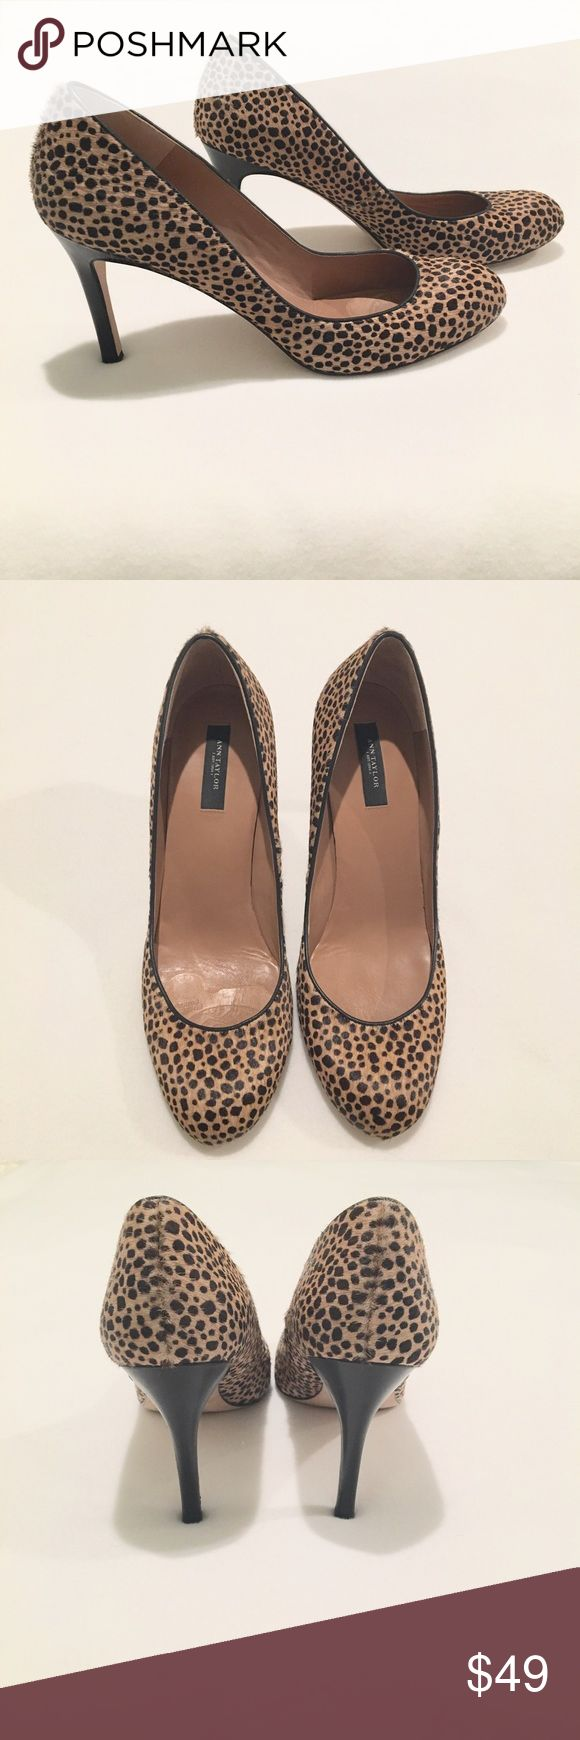 Ann Taylor Leopard Pumps Calf hair leopard print pumps by Ann Taylor.  4 inch heel.  Size 9.  Great used condition!  Please note, there is wear on the soles shown in the photos and an imprint in the right toe where a pad was that is not visible when worn.  The shoes are otherwise on excellent condition! Ann Taylor Shoes Heels